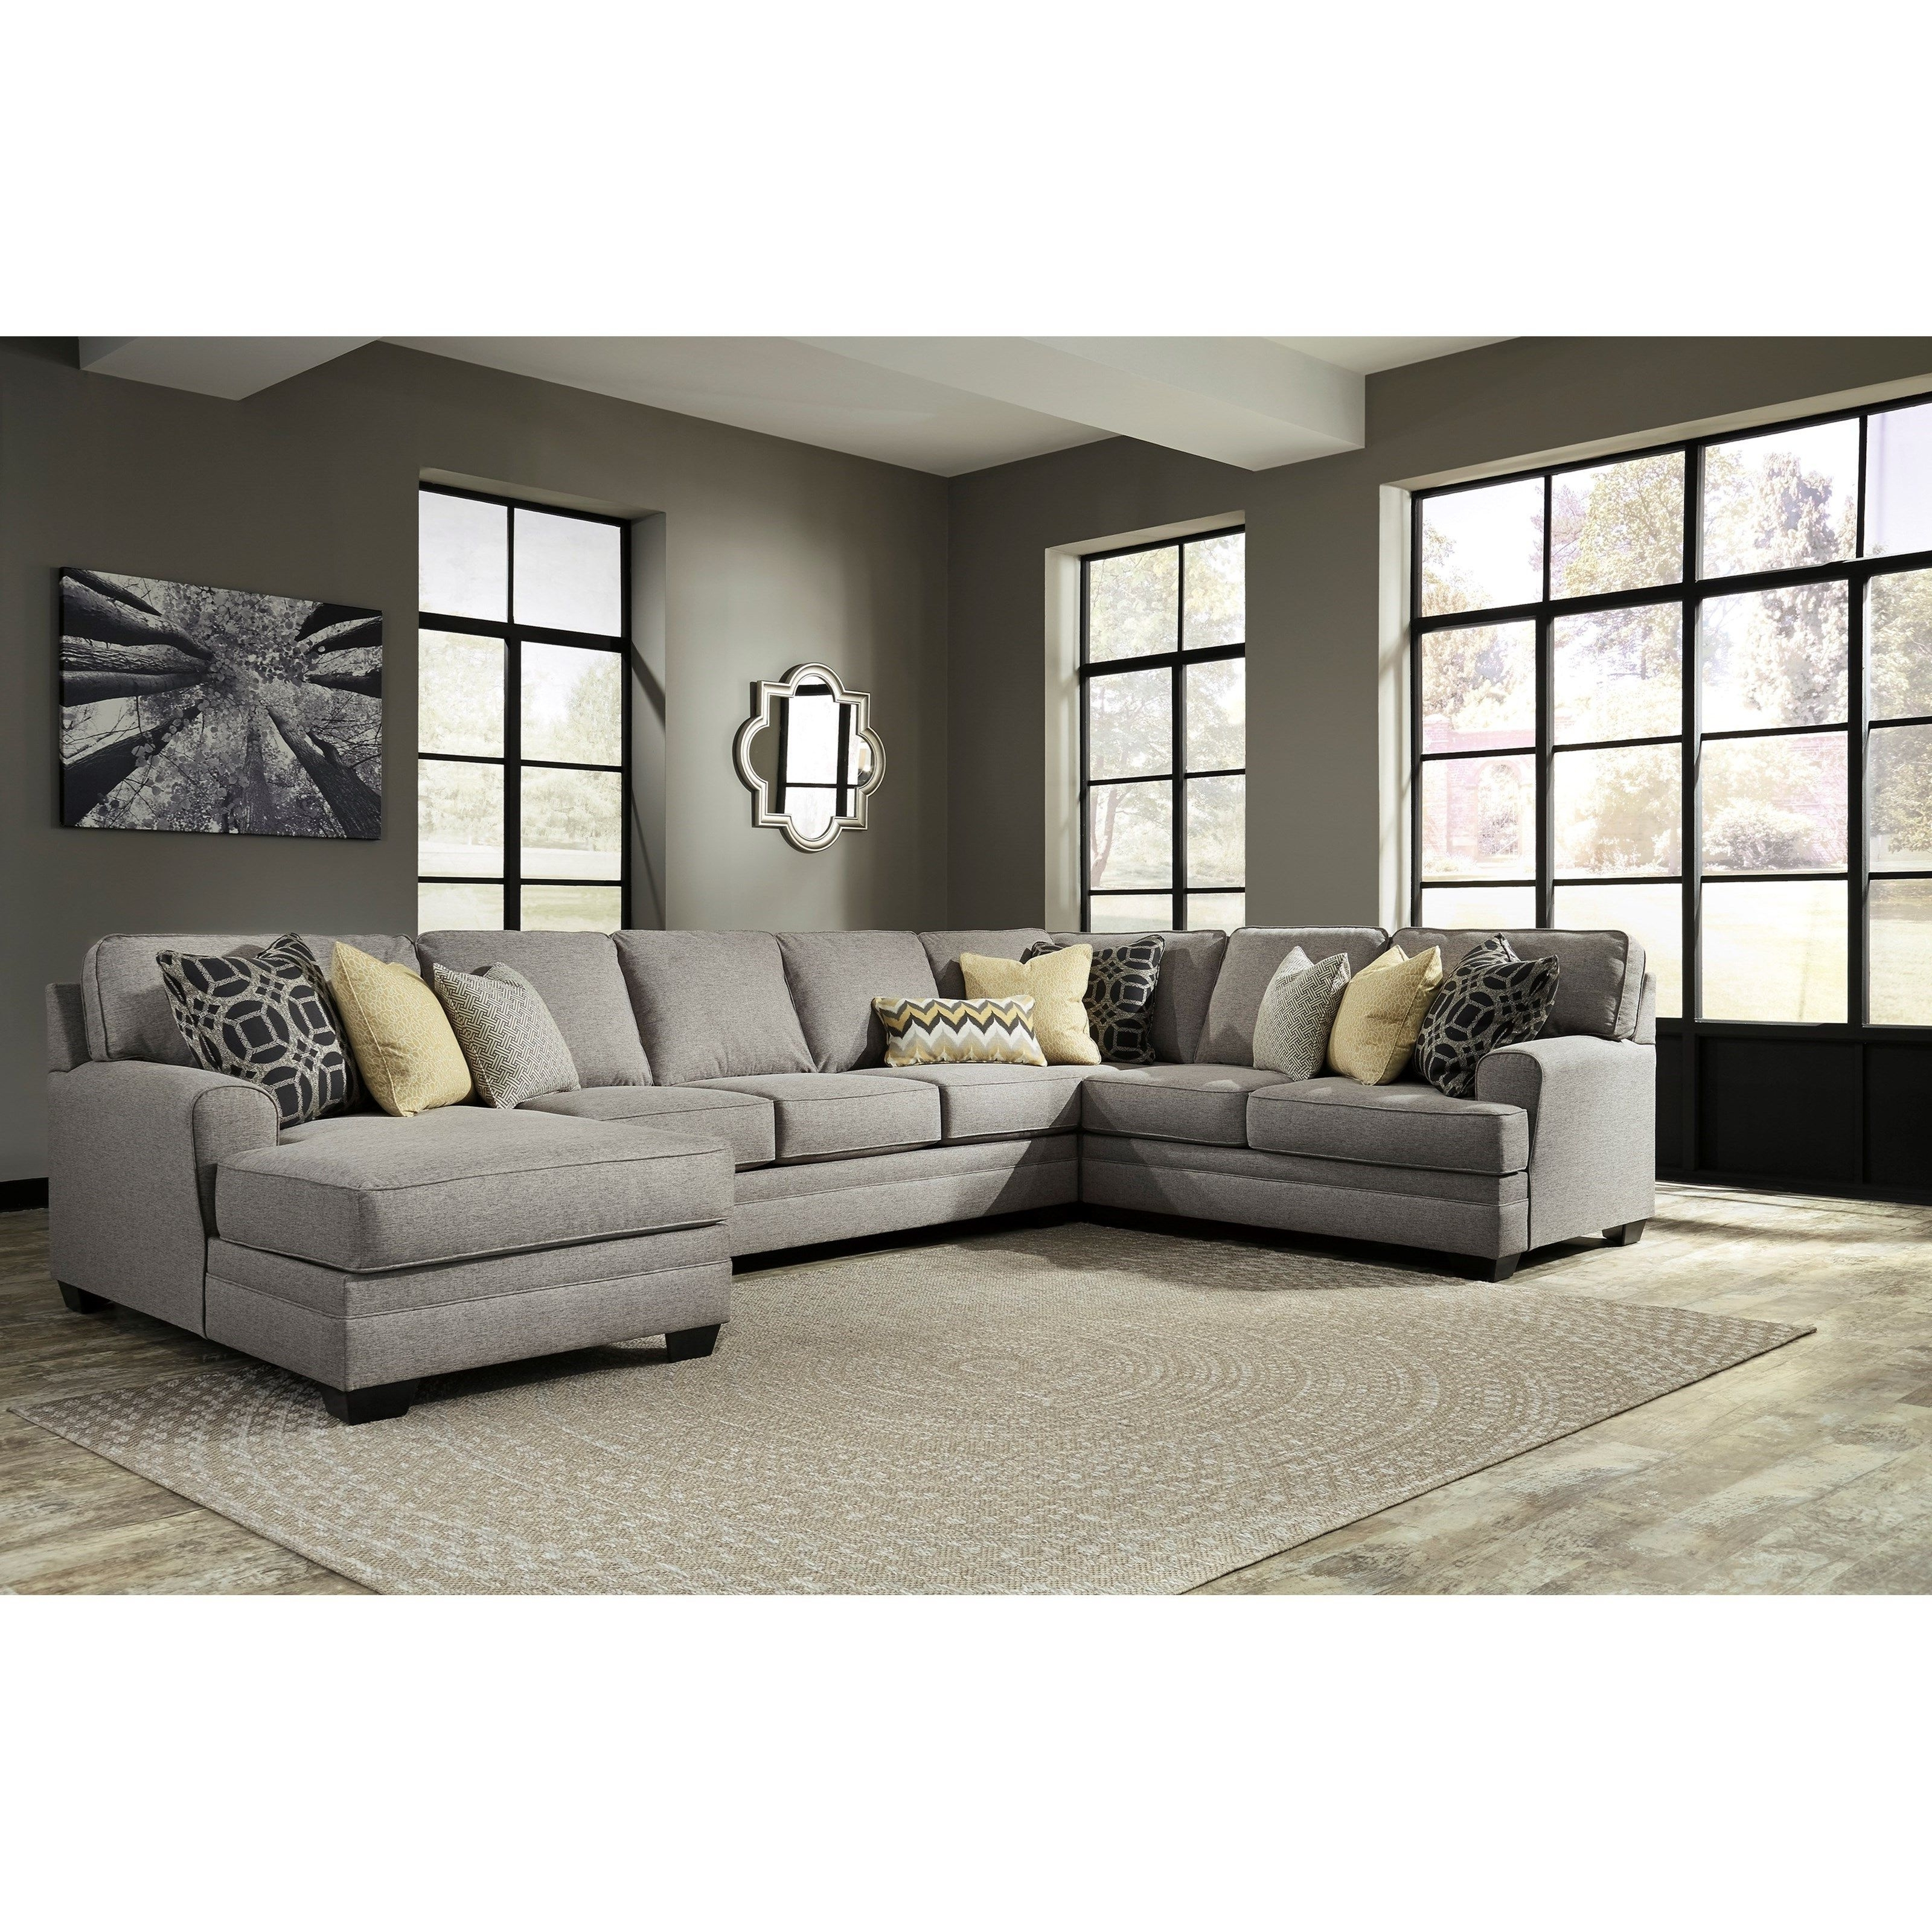 Best And Newest Armless Sectional Sofas In Contemporary 4 Piece Sectional With Chaise & Armless Sofa (View 8 of 15)